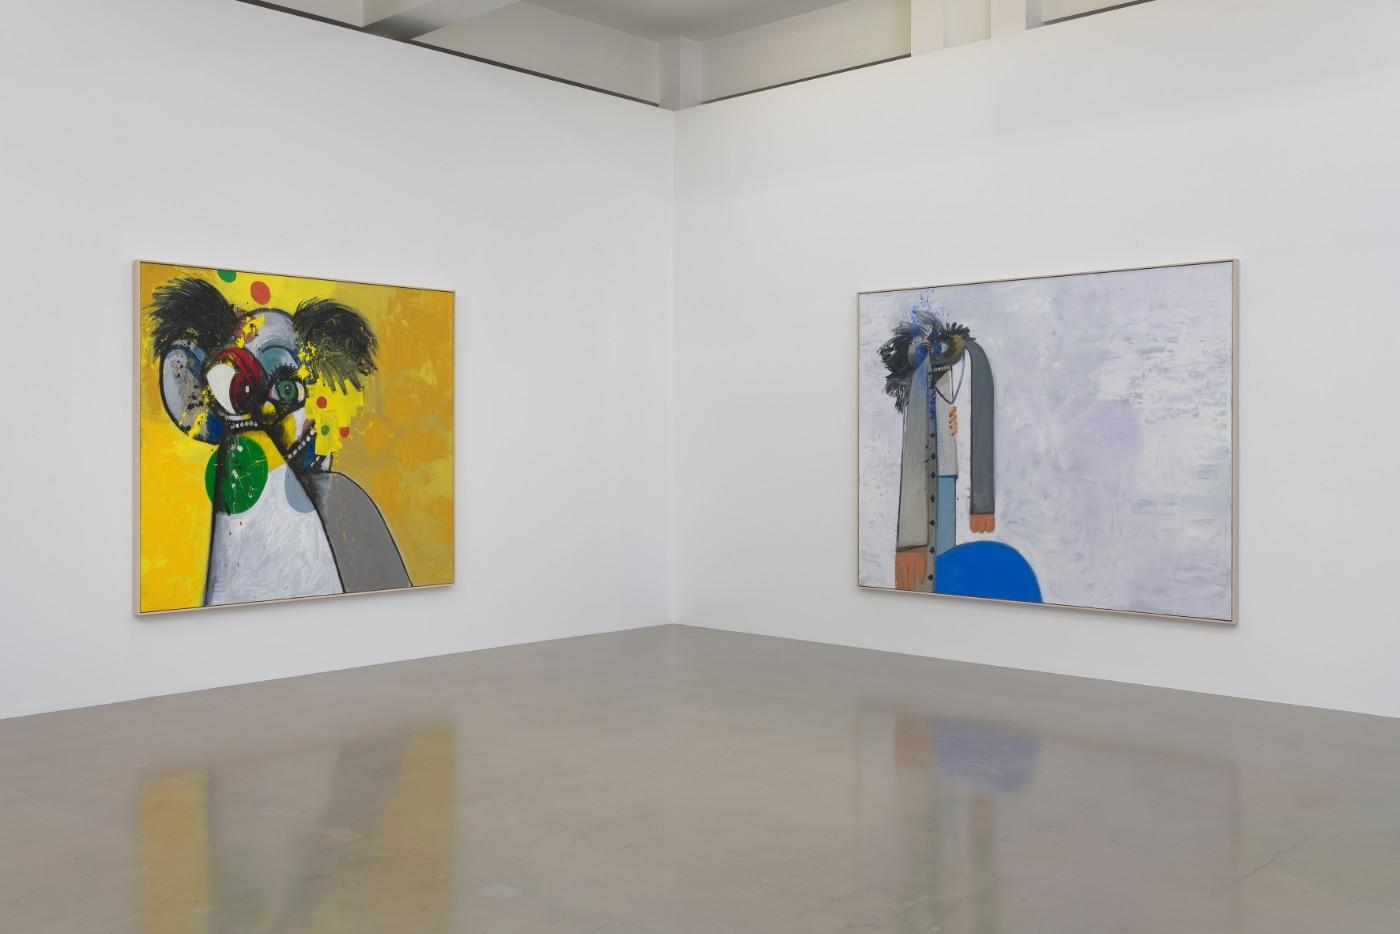 Installation view, George Condo: What's the Point?, at Sprüth Magers in Los Angeles through June 1